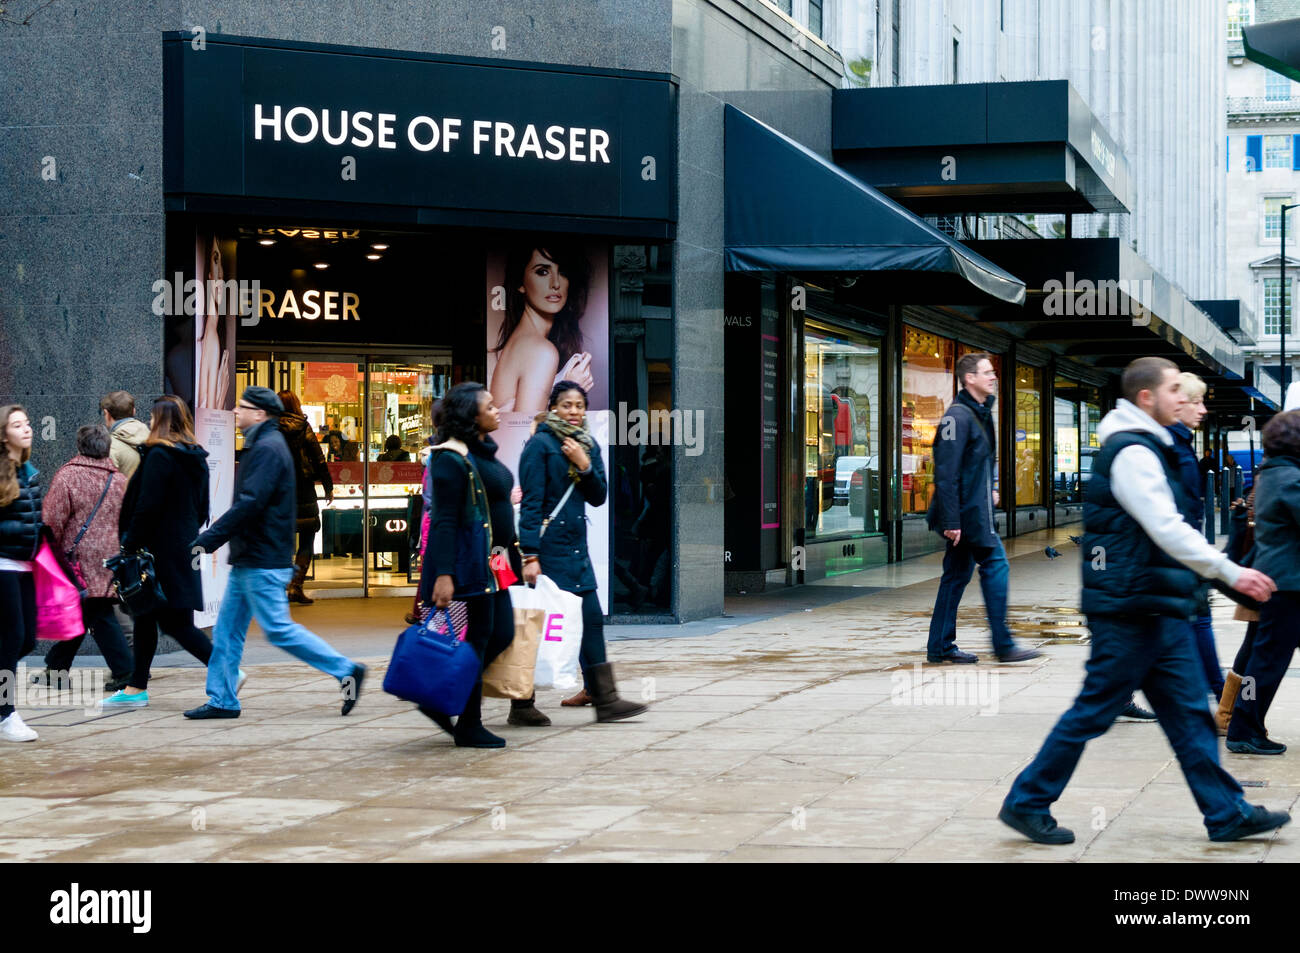 House Of Fraser Front Shop in Oxford Street Stock Photo